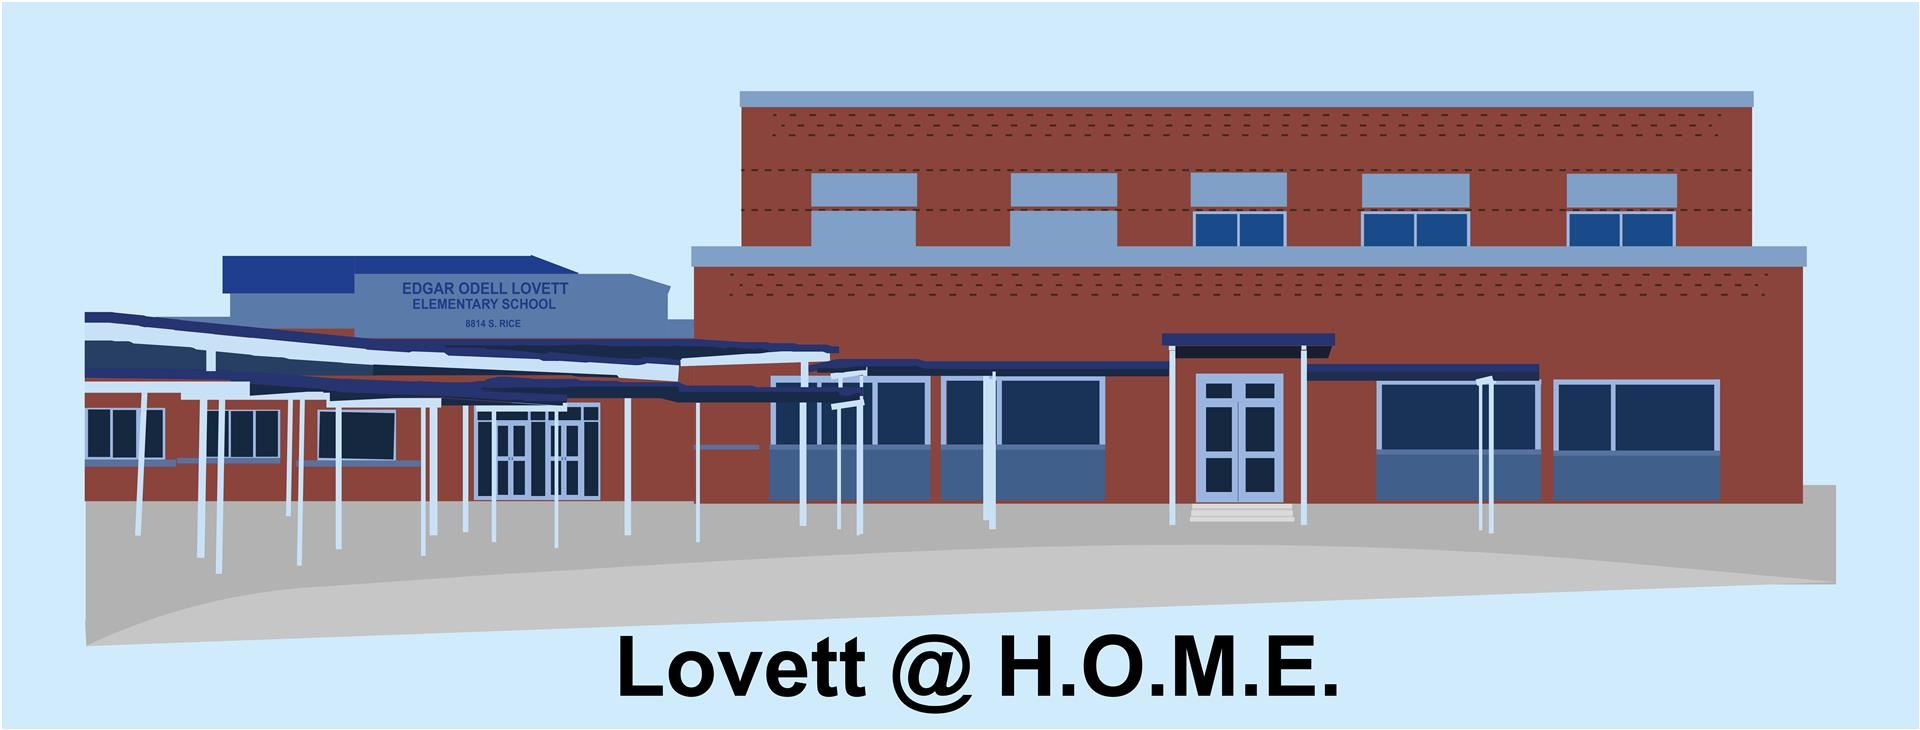 Lovett @ HOME